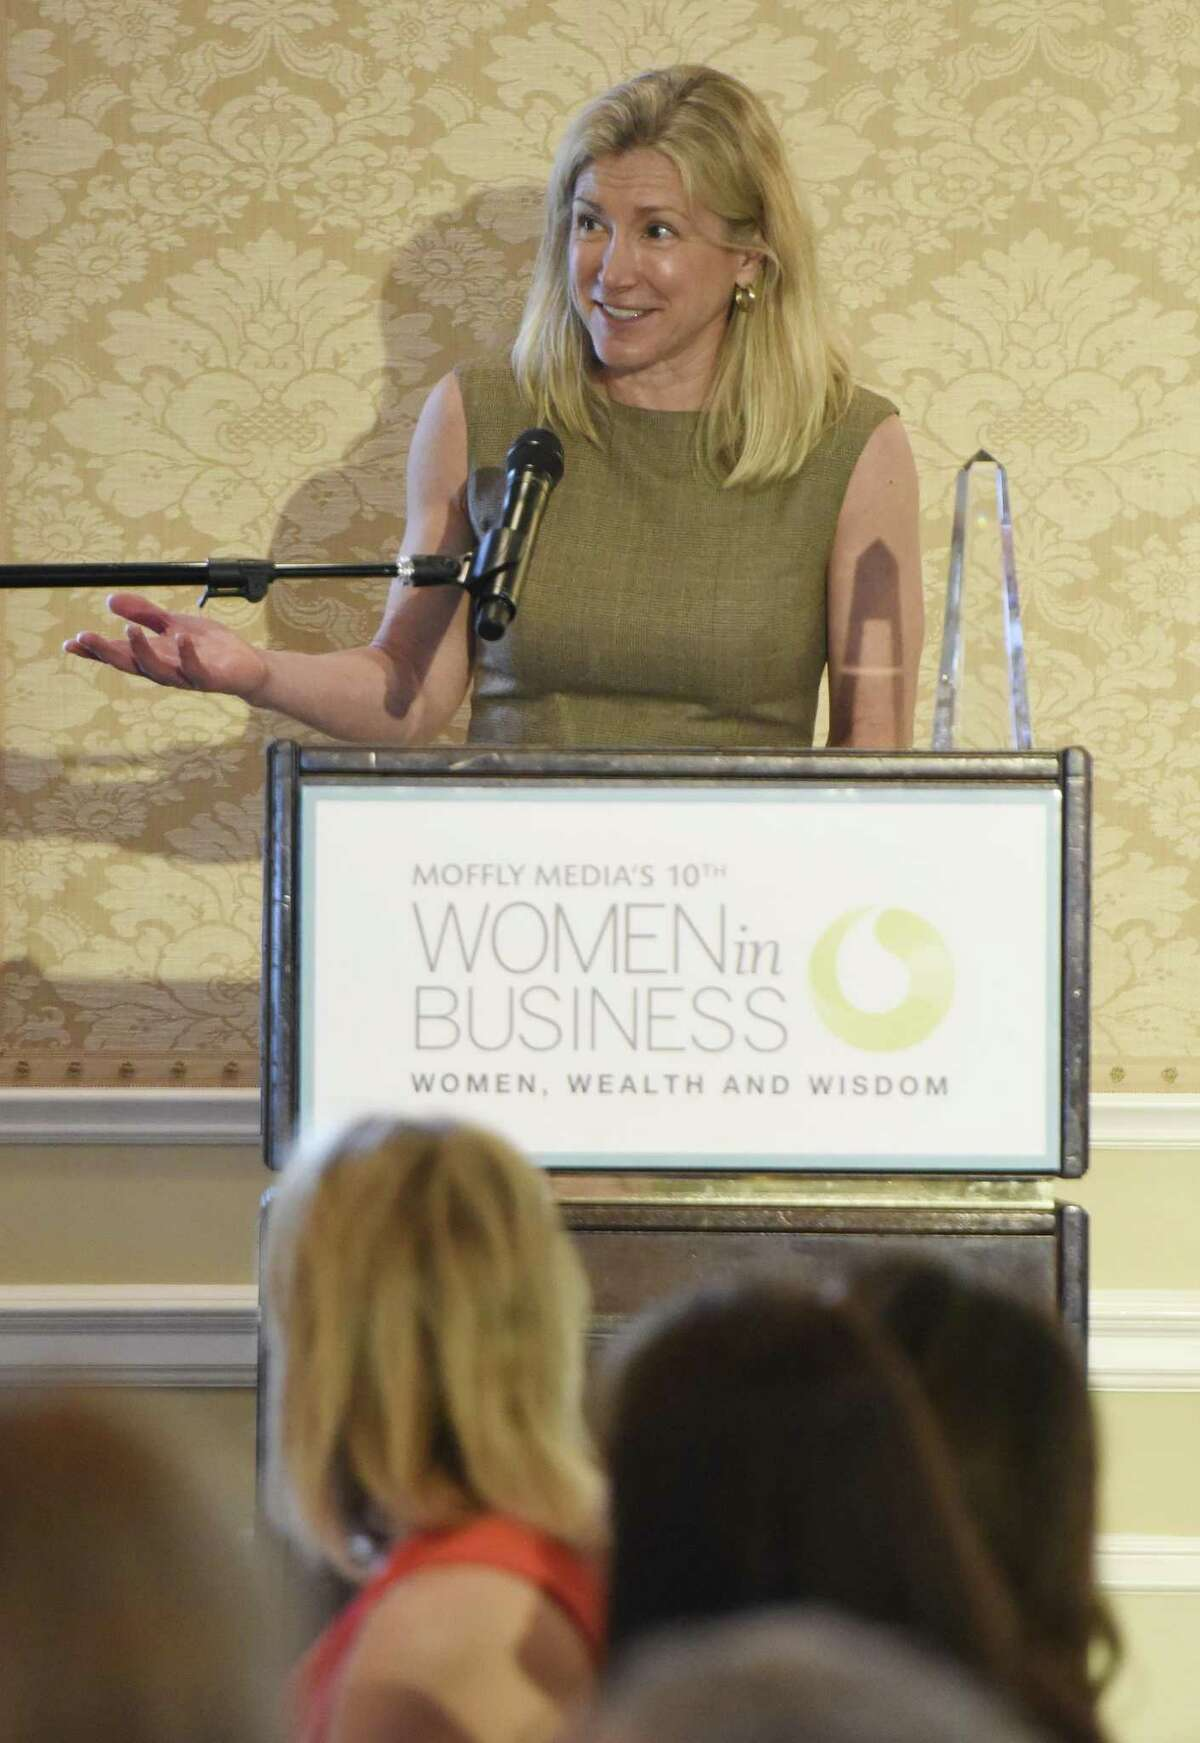 1843 Capital Founding Partner Tracy Chadwell accepts an award at the Moffly Media Women in Business Luncheon at Greenwich Country Club in Greenwich, Conn. Wednesday, May 16, 2018. Chadwell won the Women's Business Advocate award for her firm, which invests in women-led companies.